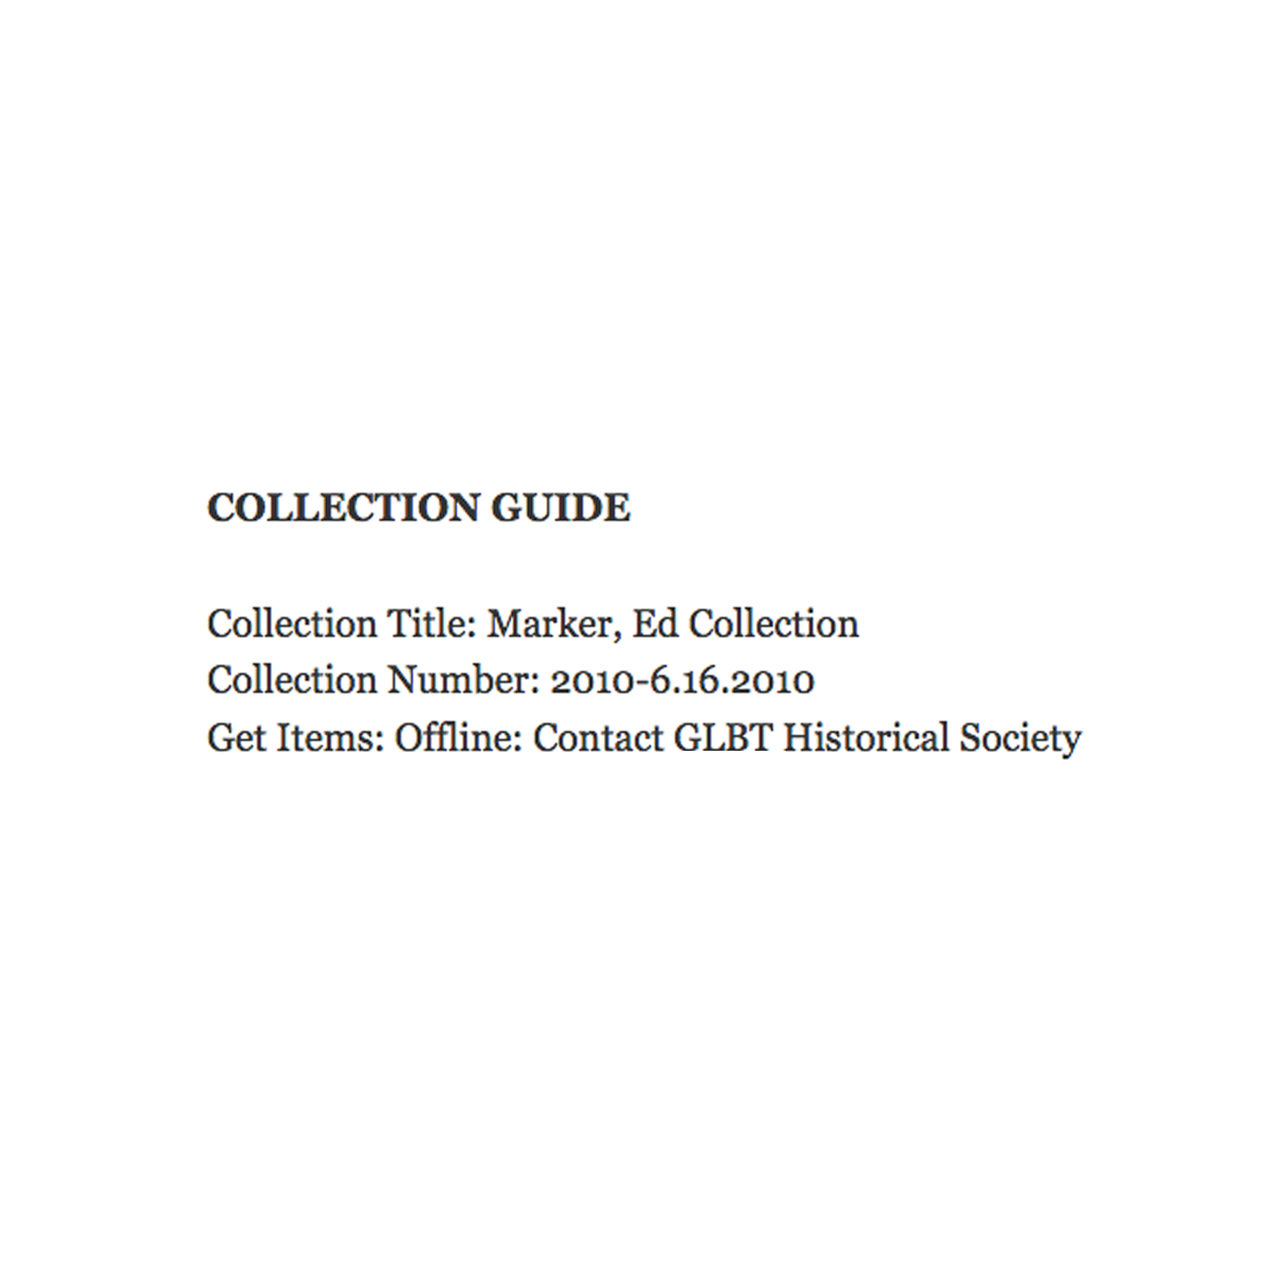 Collection Guide